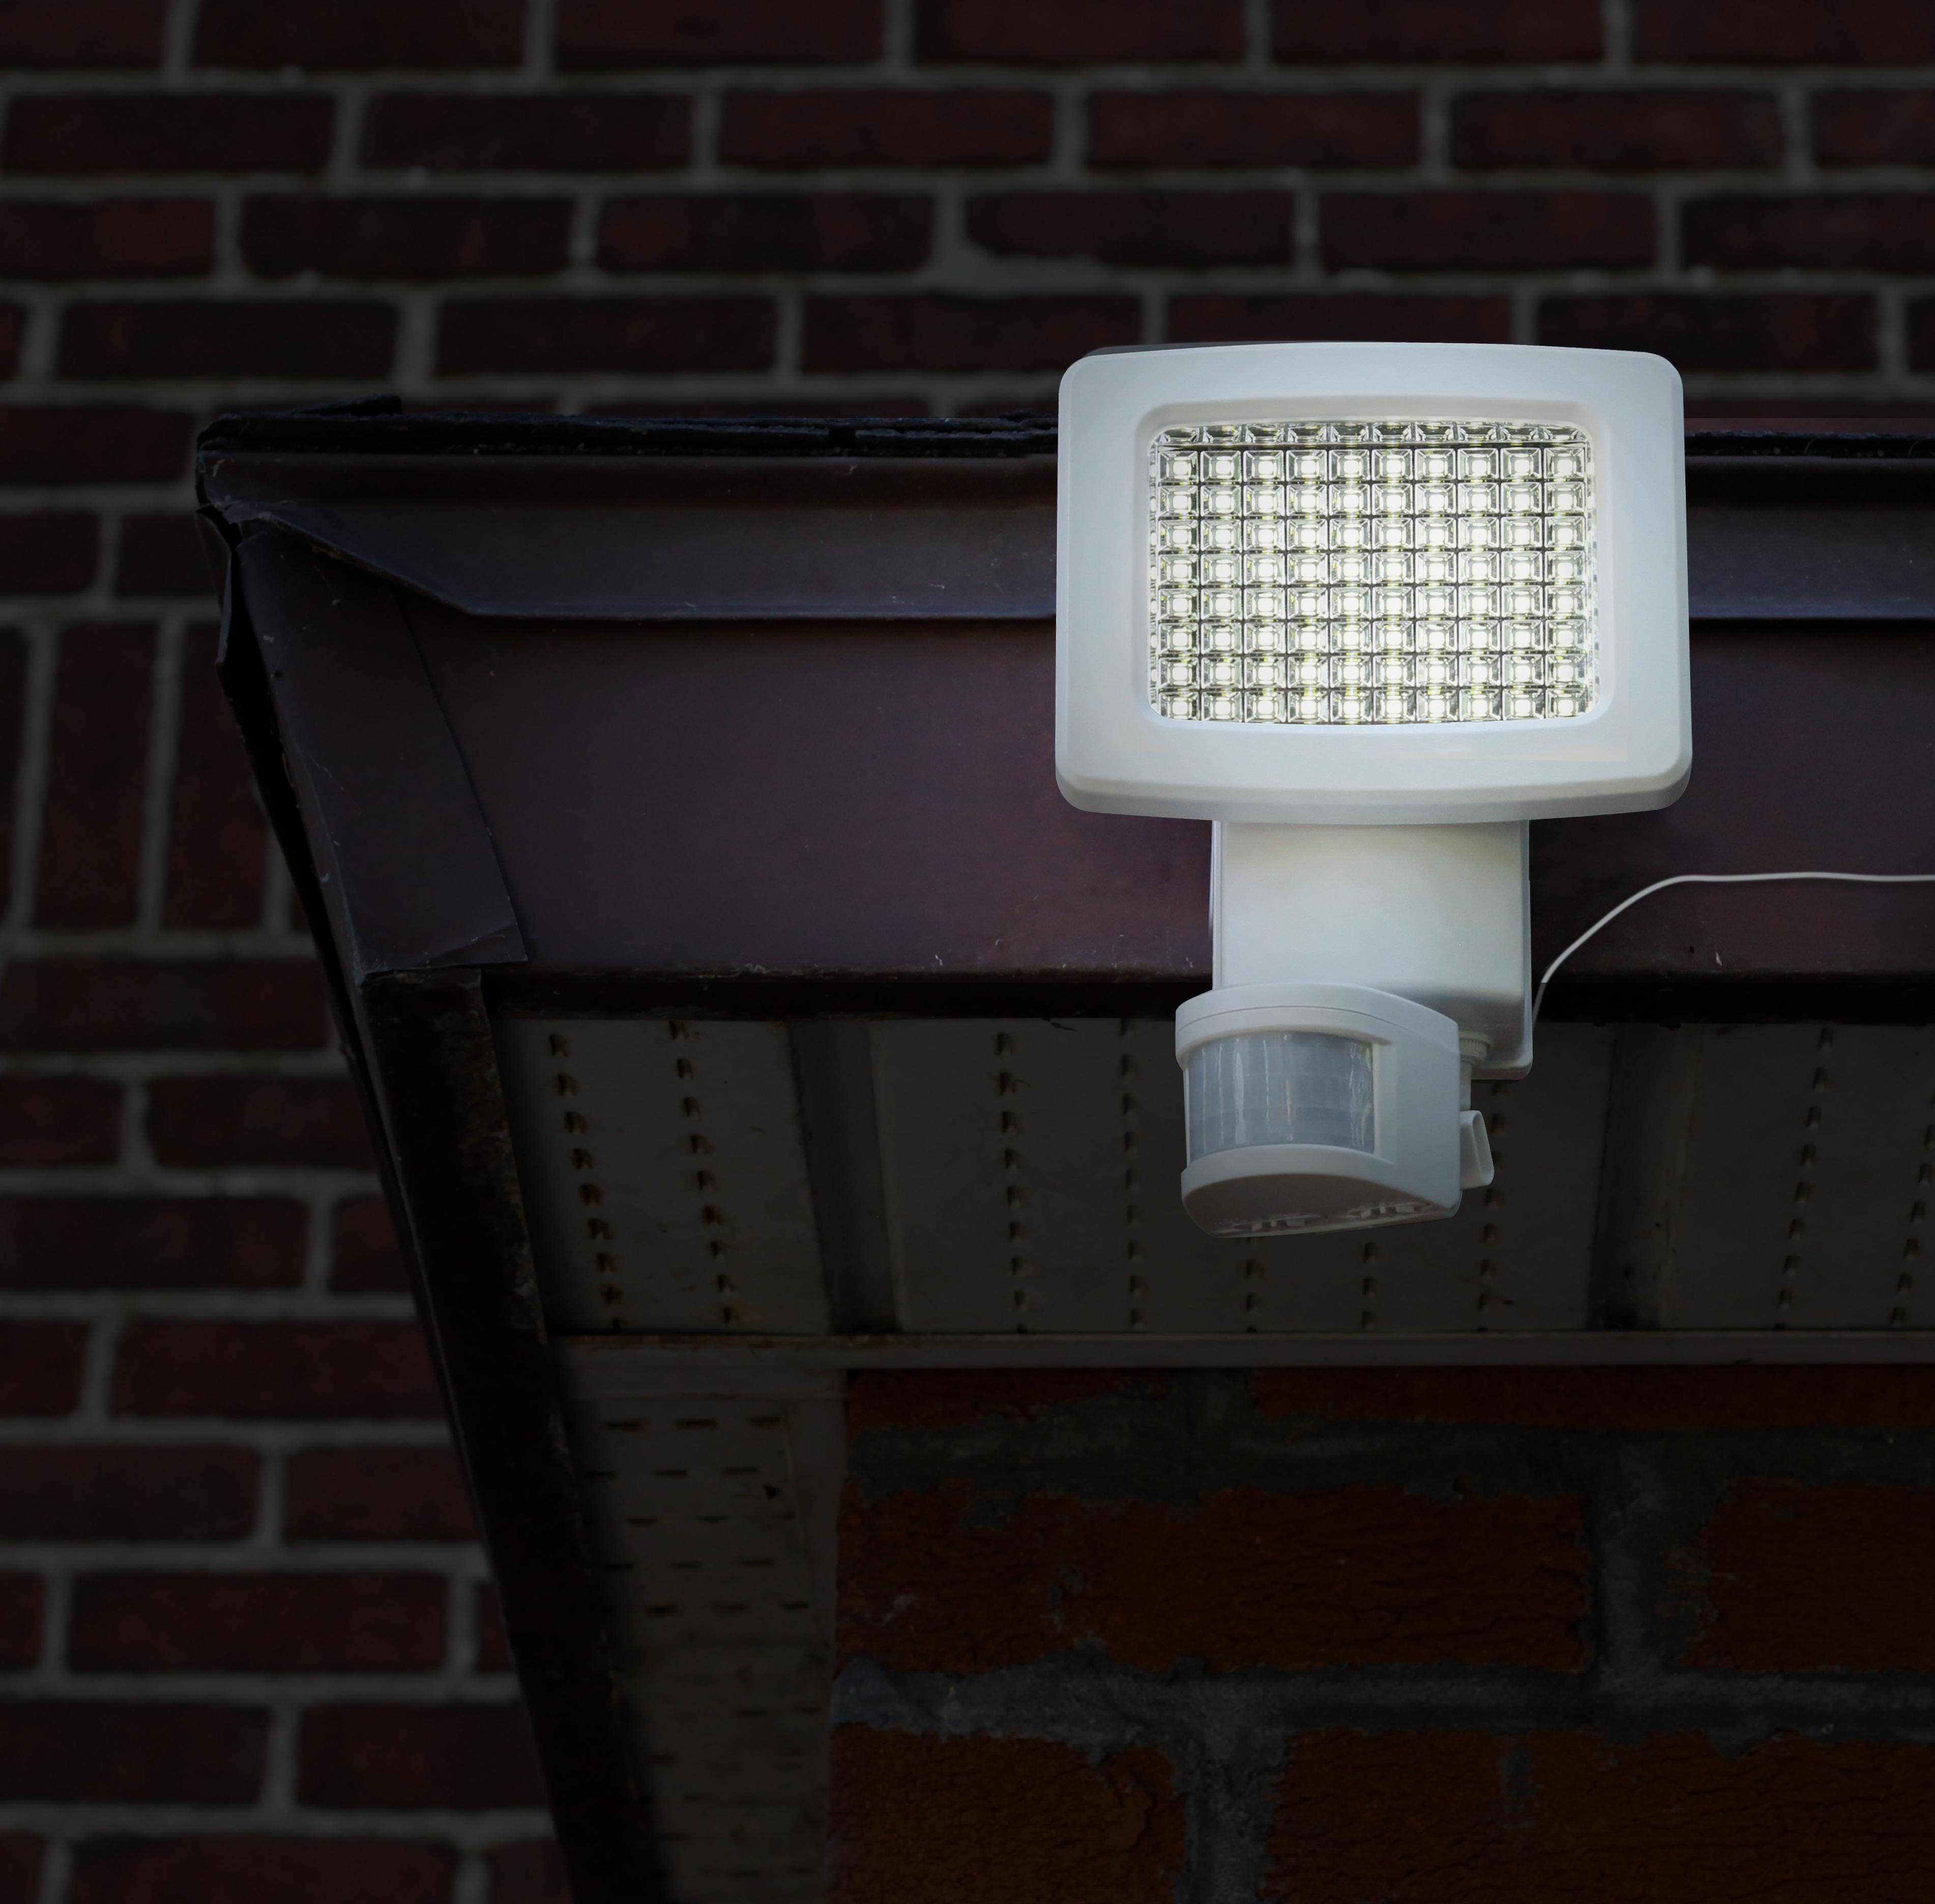 Outdoor Security Lights Costco: Amazon.com: Sunforce 82080 80-LED Solar Motion Light